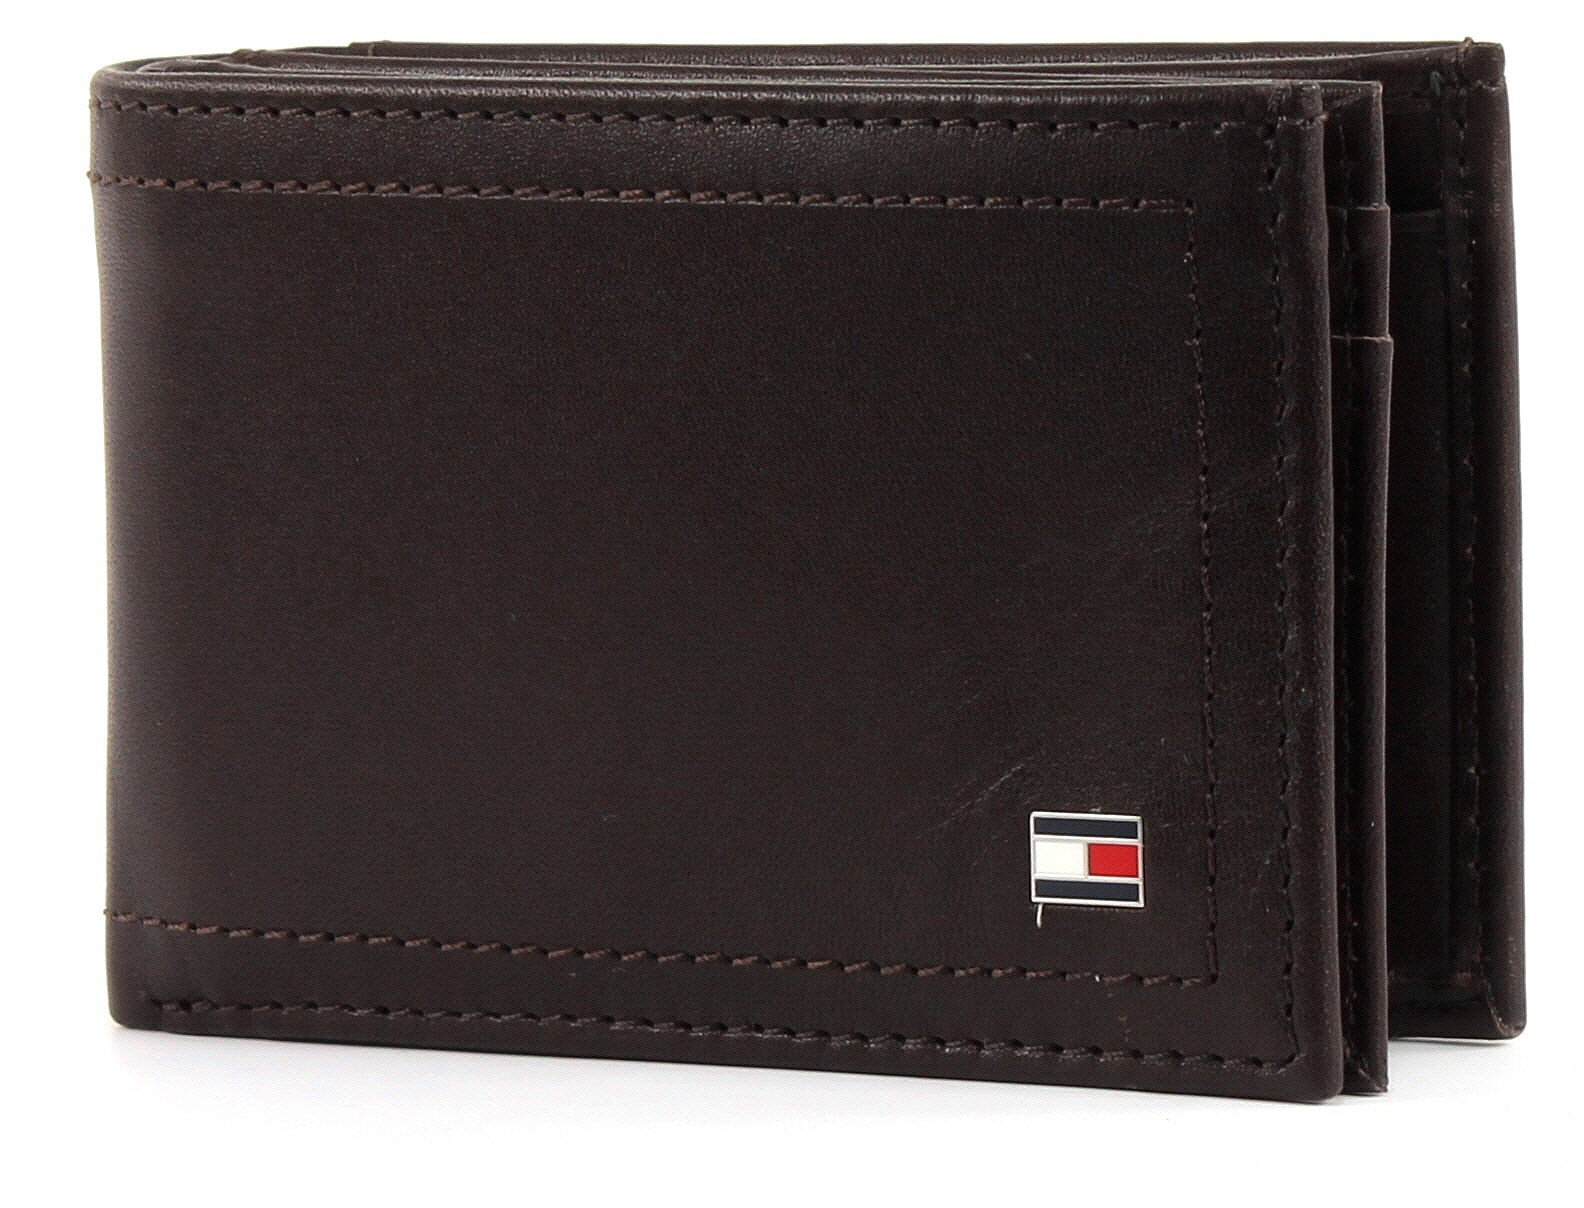 Tommy Hilfiger Mens Harry Cc AND Coin Pocket Purse (Coffee Bean) Cheap Sale Hot Sale zDJMOniW